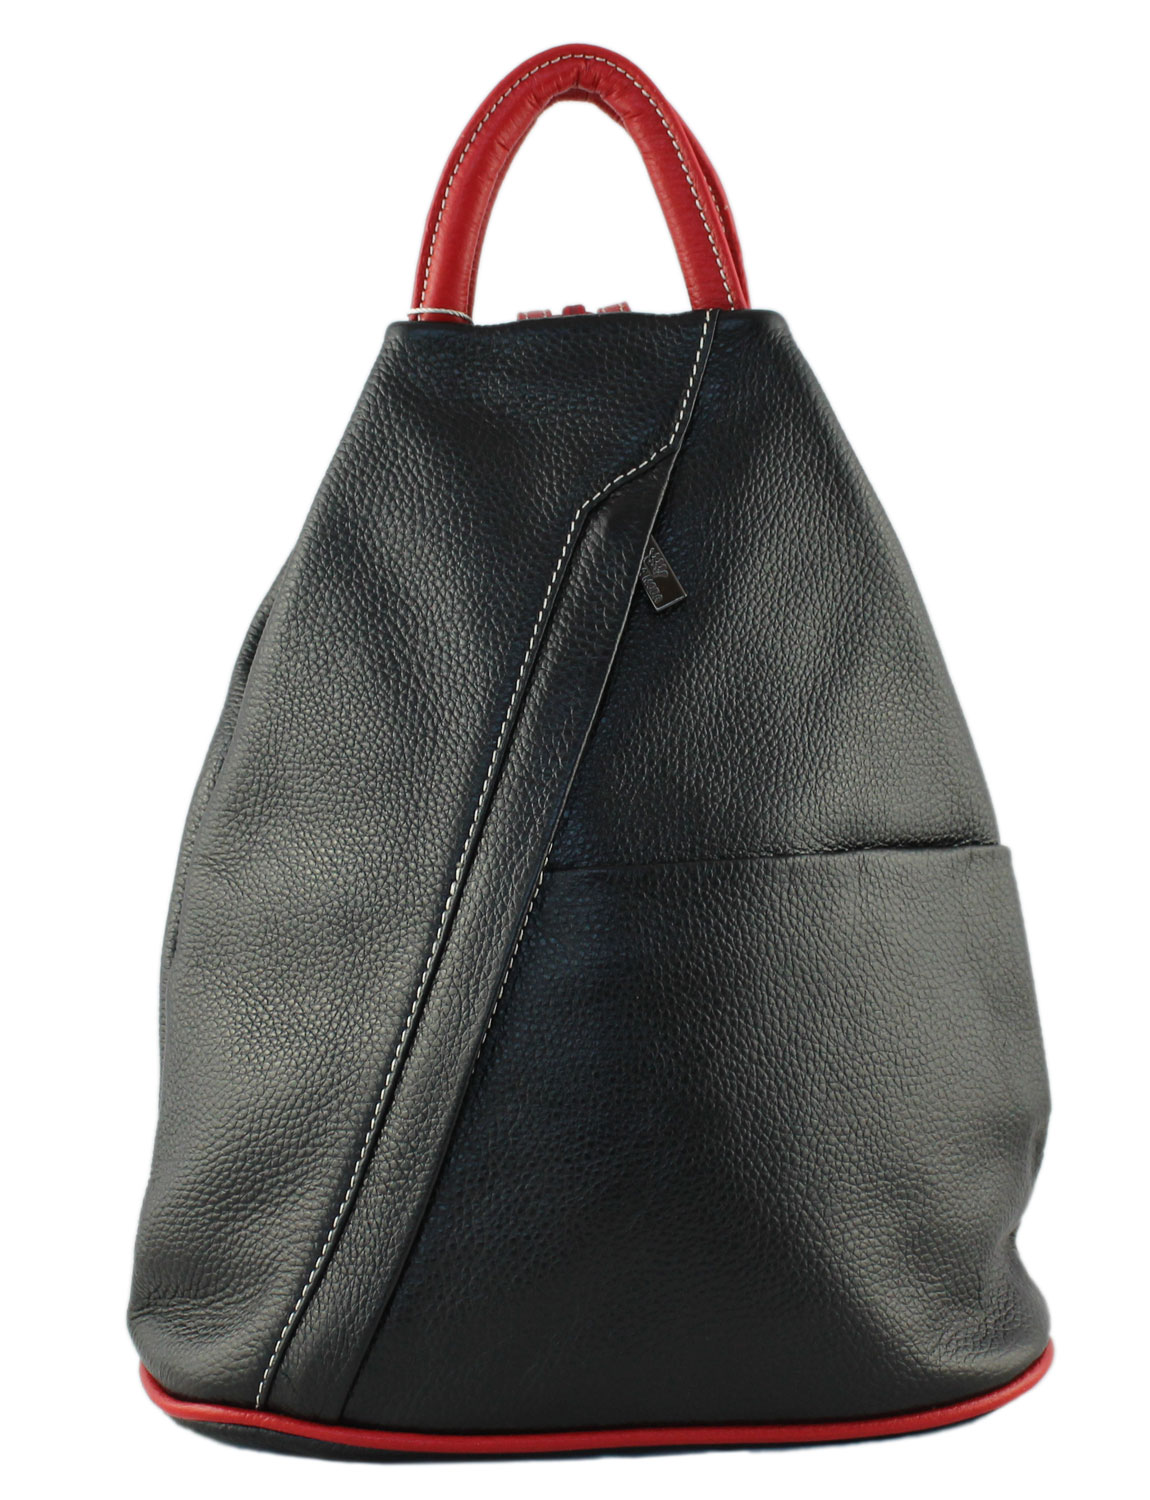 Tuscany Soft Leather Backpack in Black with Red Trim